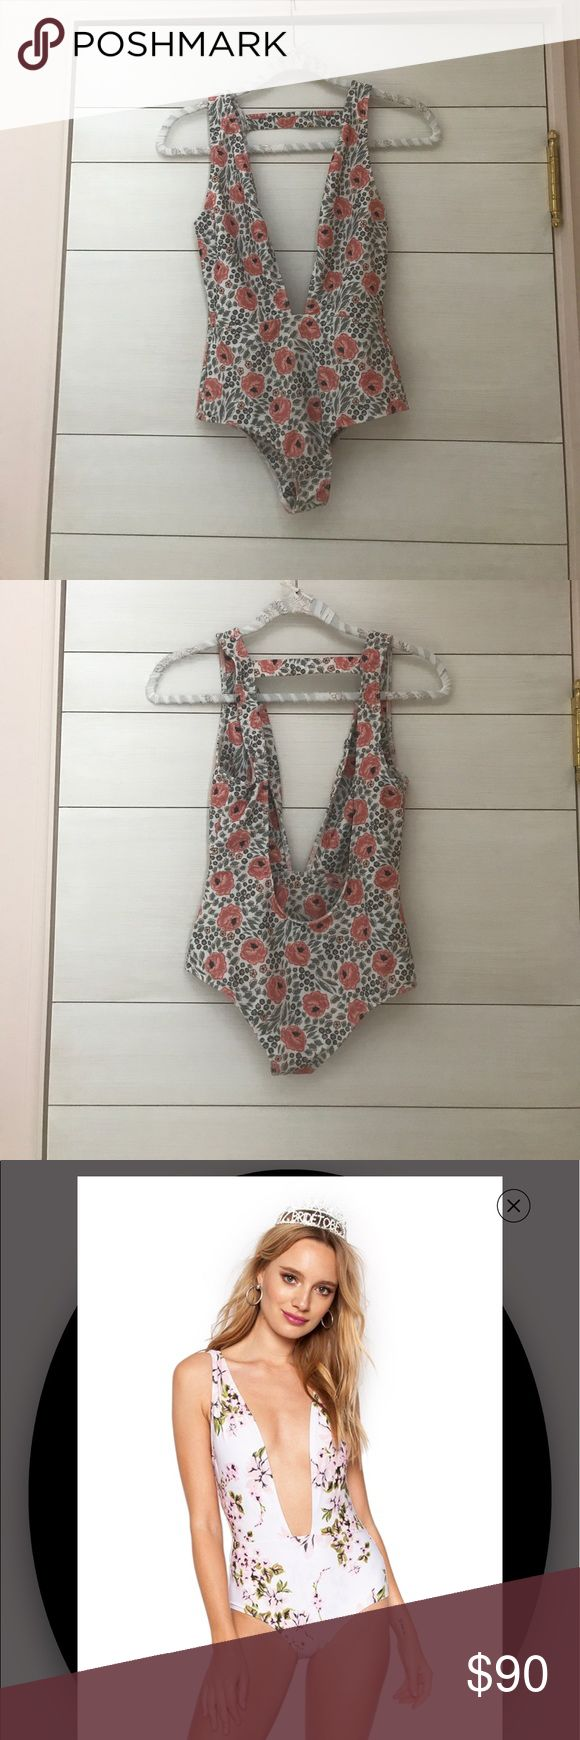 BEACH RIOT one piece Sold out, can't find anywhere else. Worn once in a hot tub. No stains or damages. Beach Riot Swim One Pieces